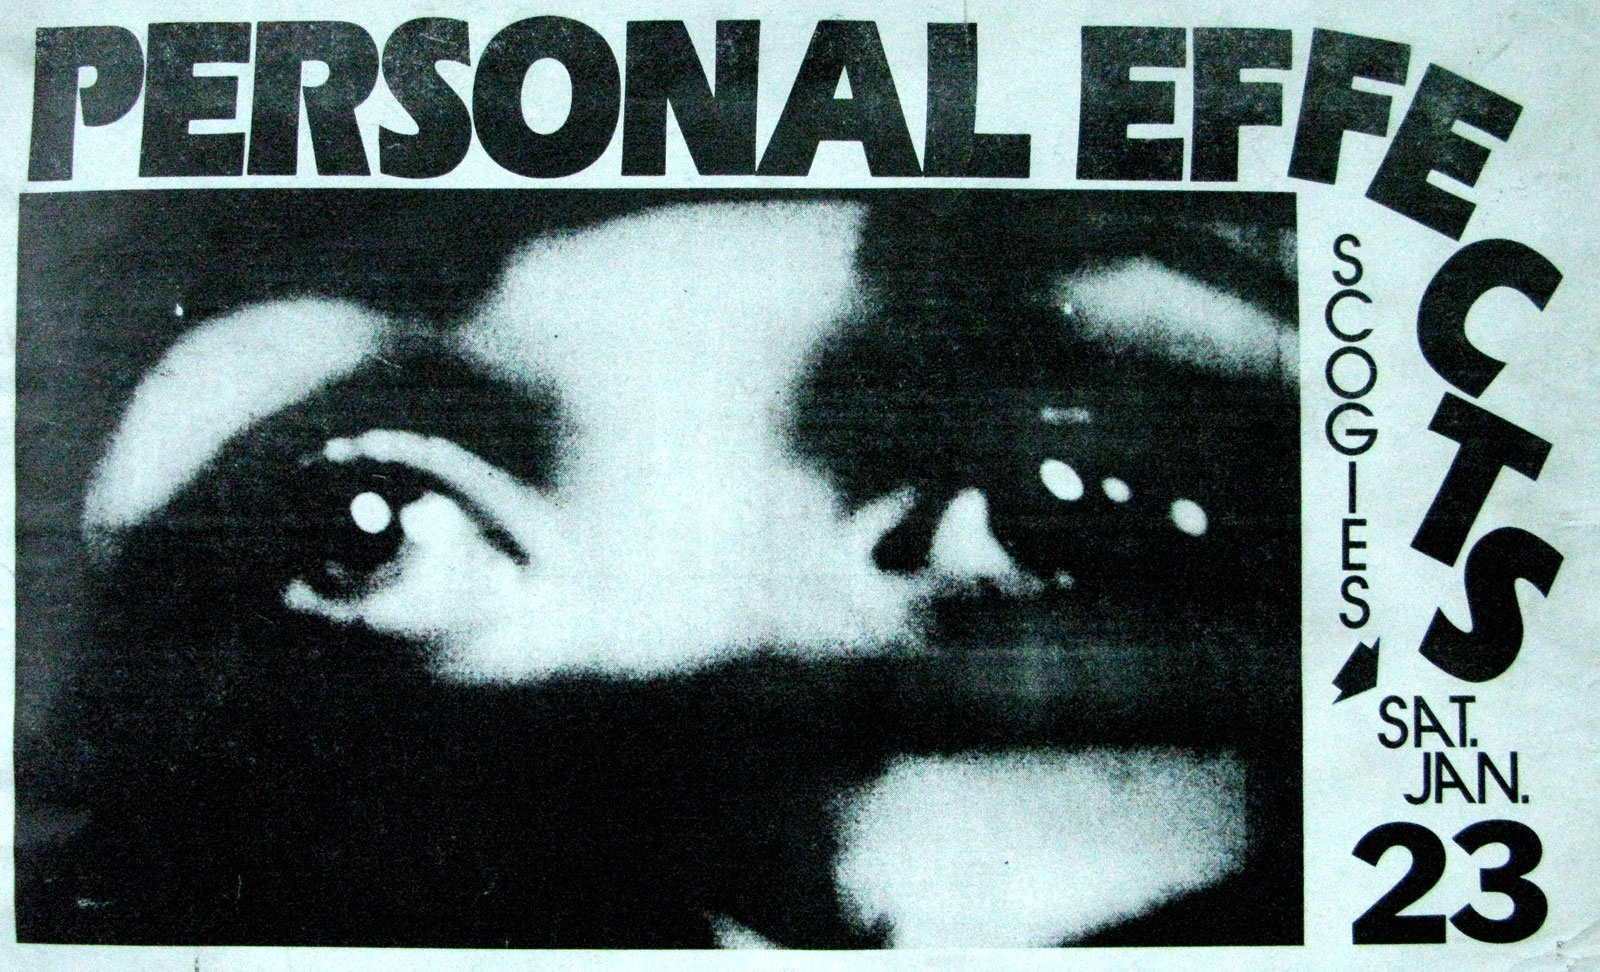 Poster for Personal Effects at Scorgies in Rochester, New York 01.23.1982